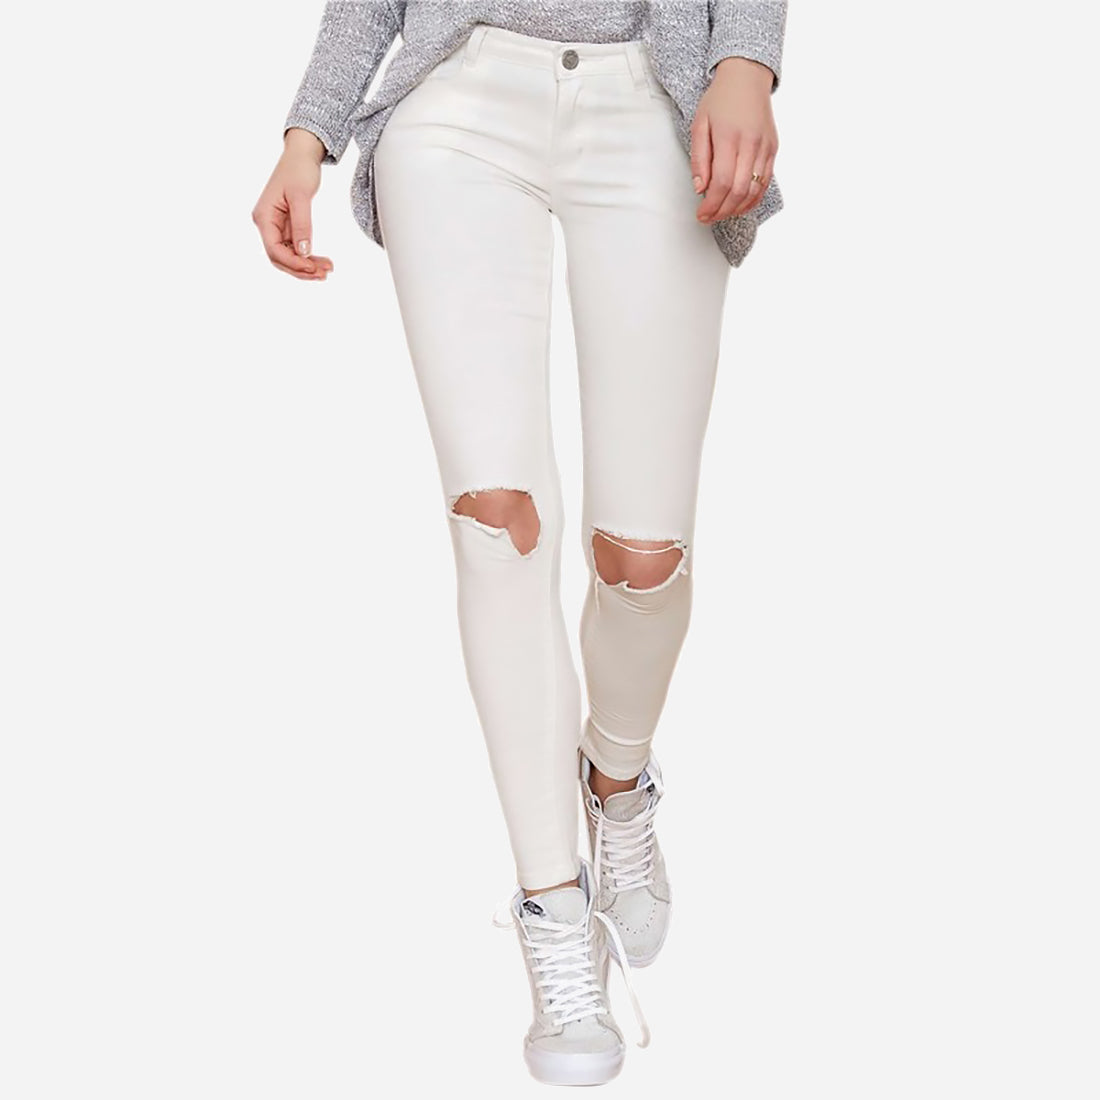 KNEE CUT OUT STRETCH PANTS